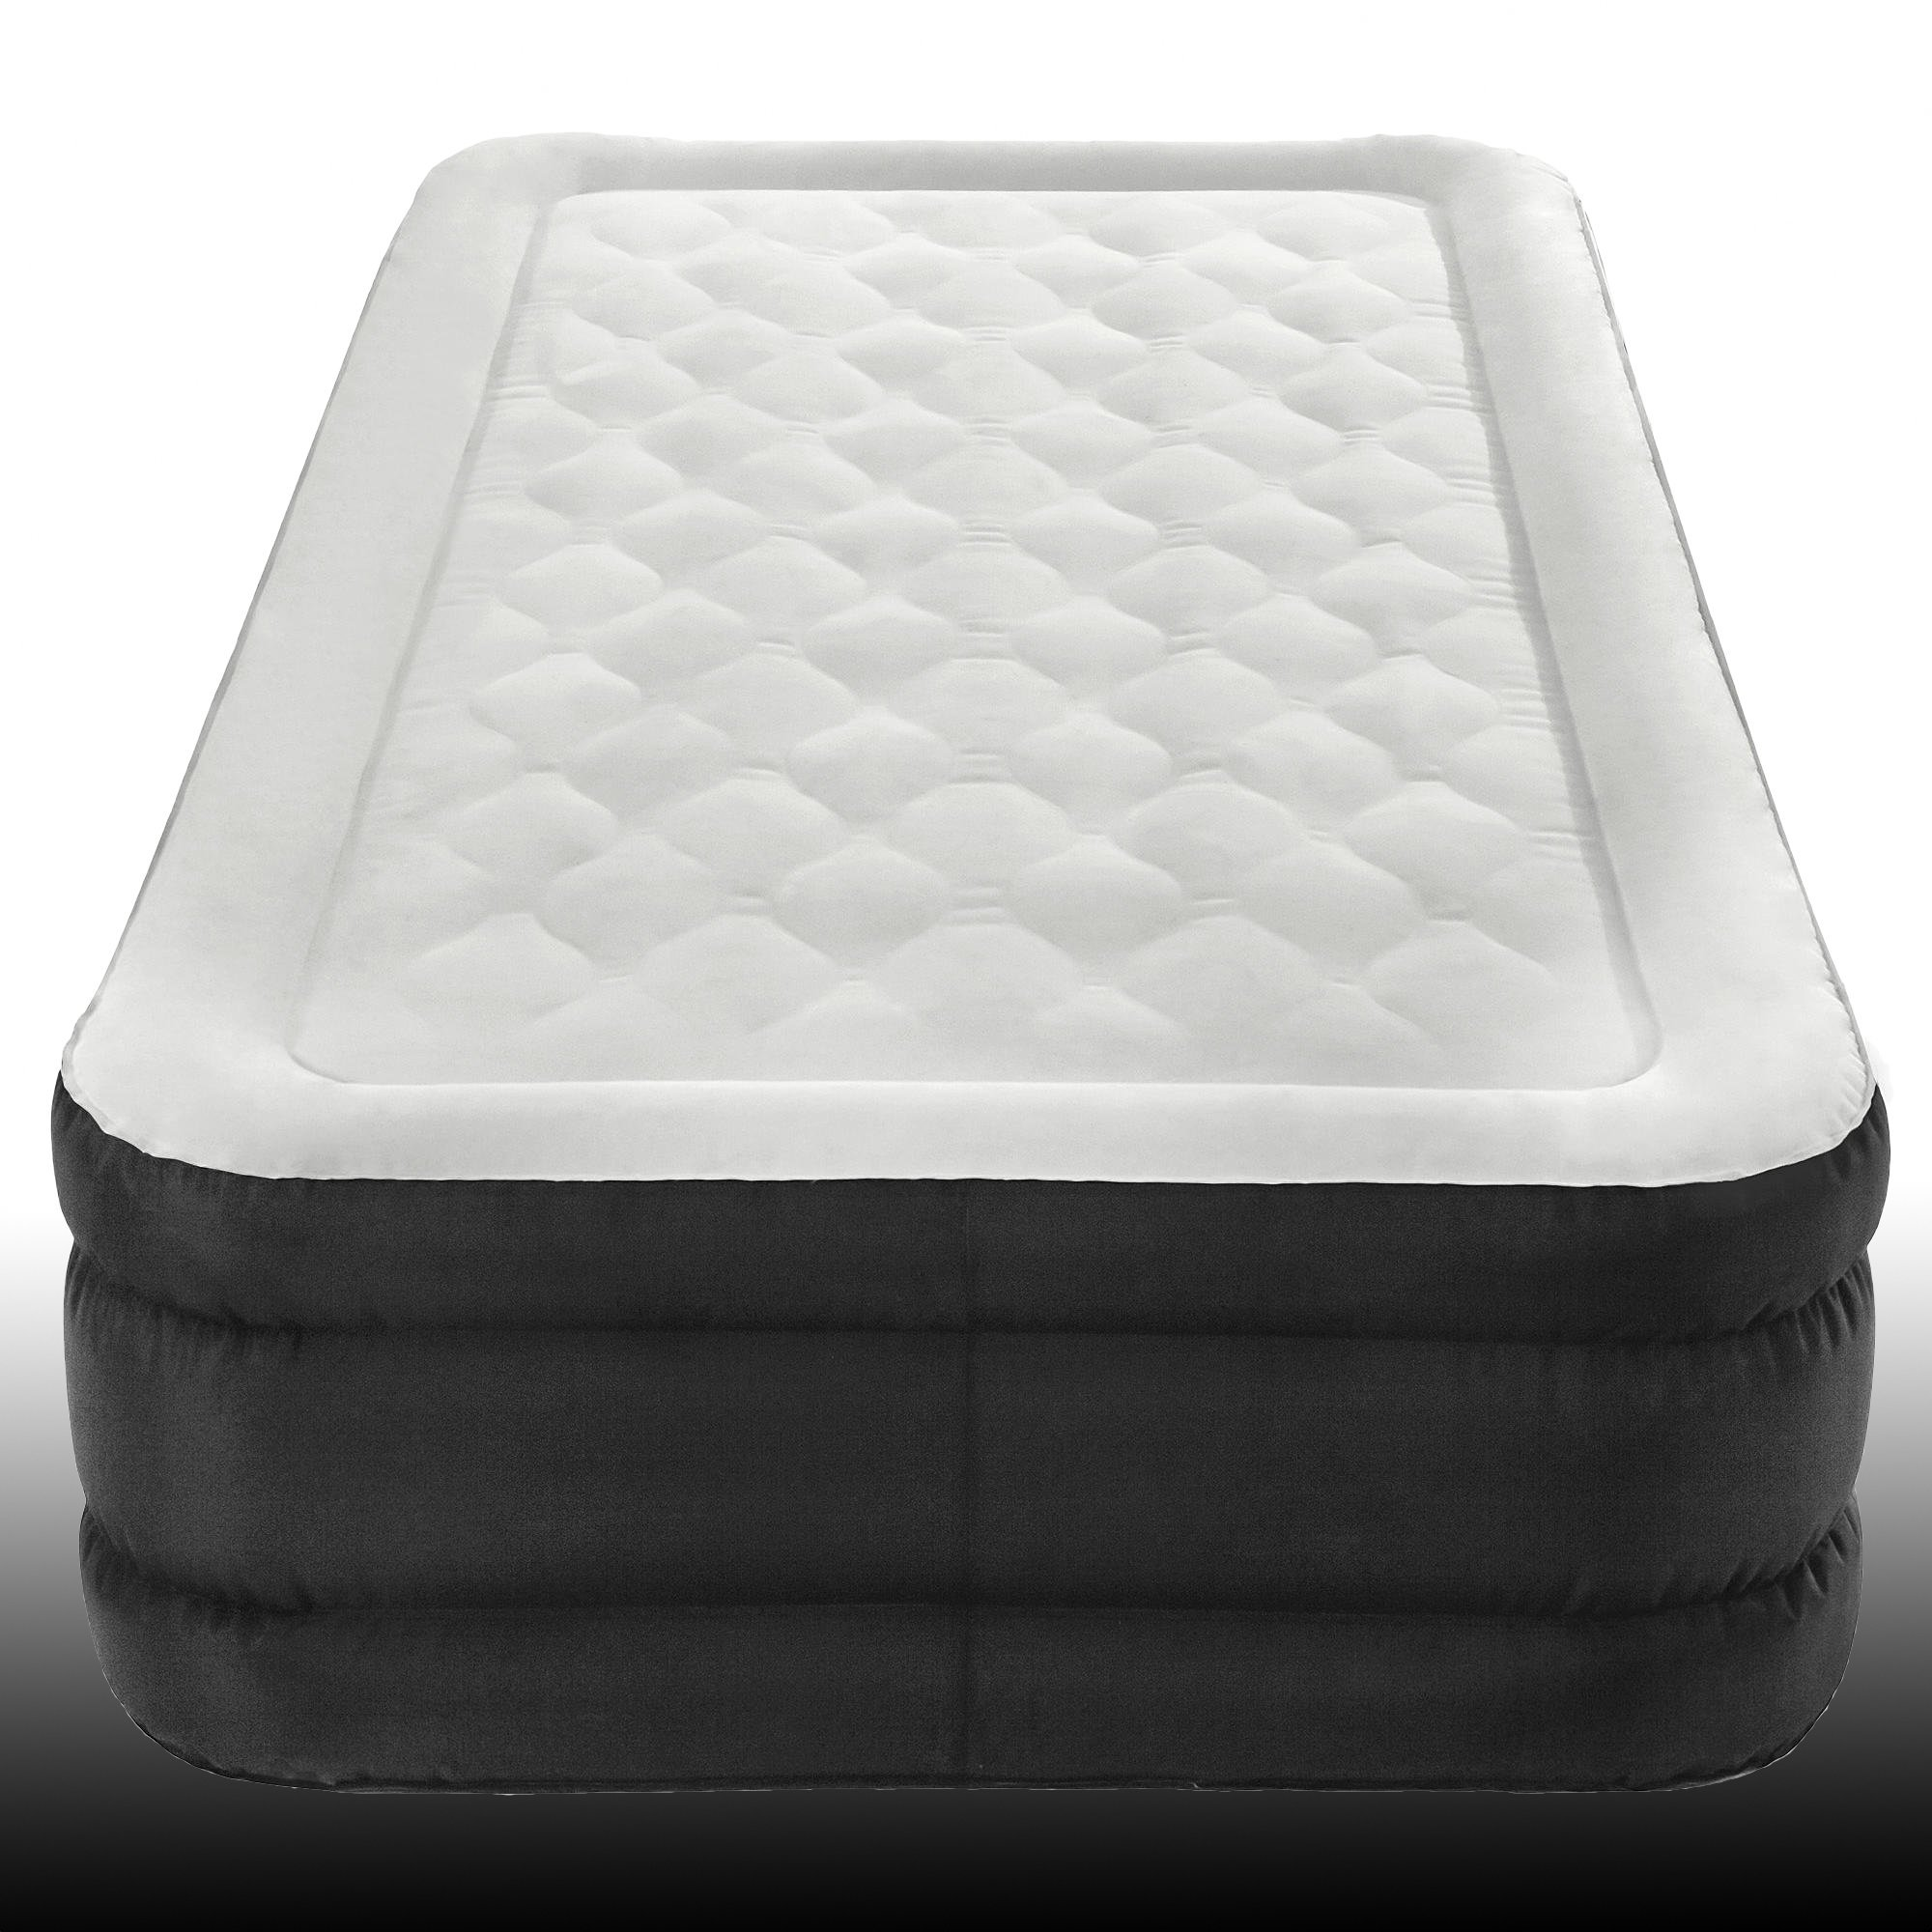 Elevated Air Bed, Black Colour, Polyvinyl Chloride Material, Electric Pump Included, Durable And Sturdy Construction, Guarantee Included, Ideal For Any Home, Comfortable And Stylish & E-Book